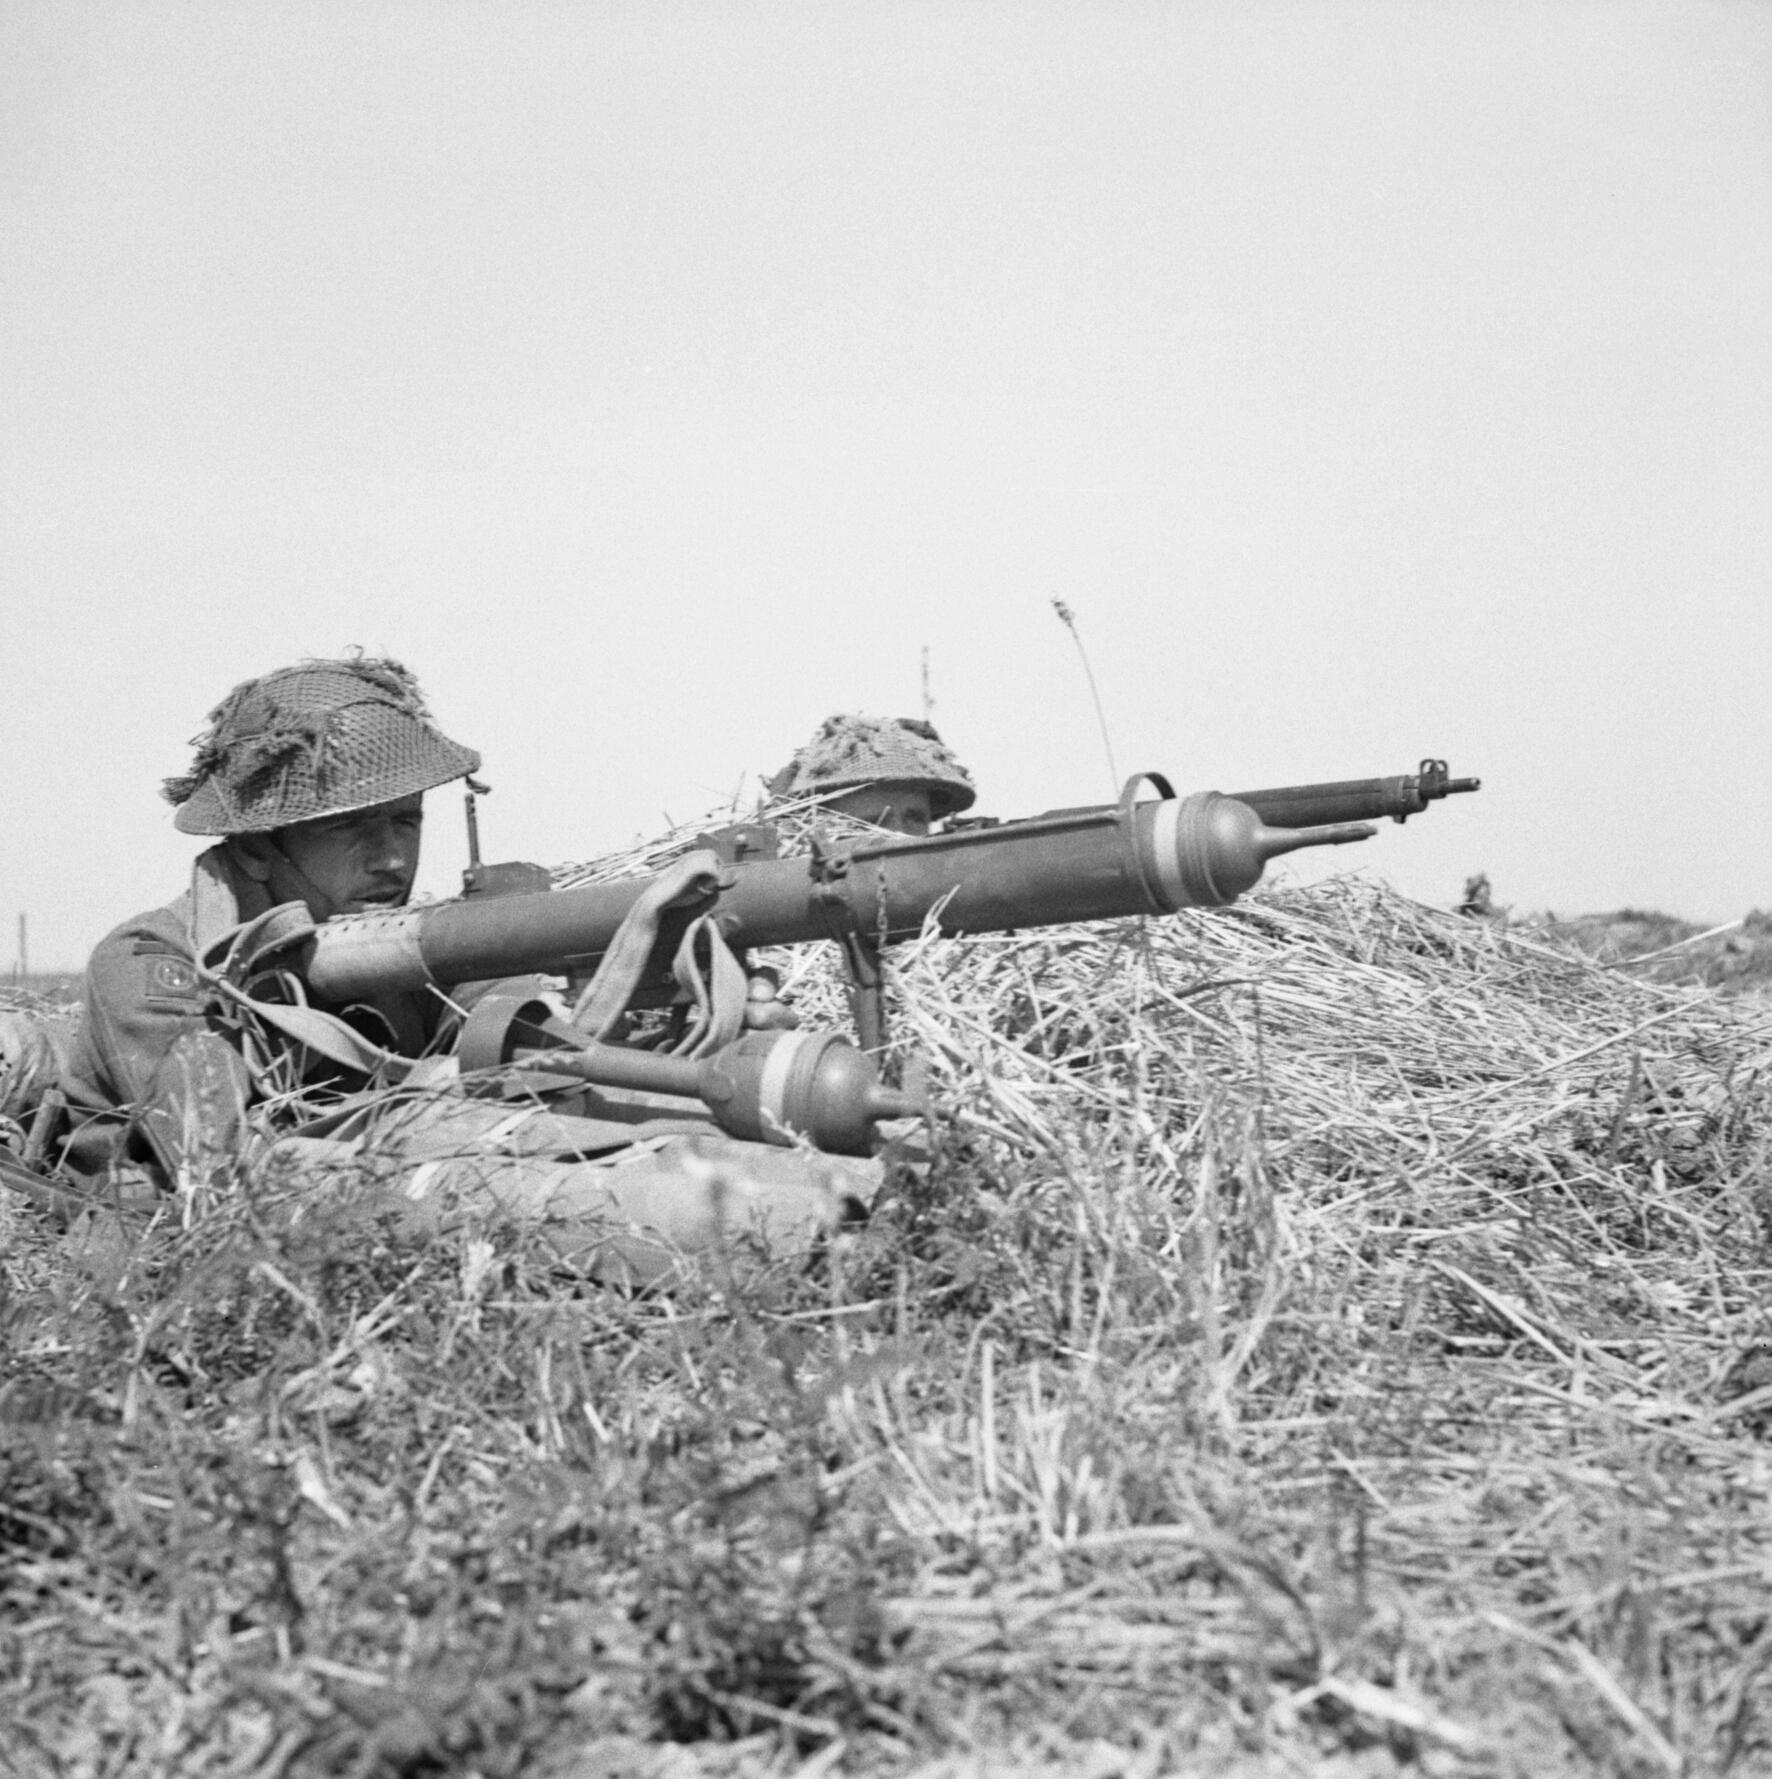 German 50 Mm Anti Tank Gun: File:A British Infantryman Prepares To Fire A PIAT Anti